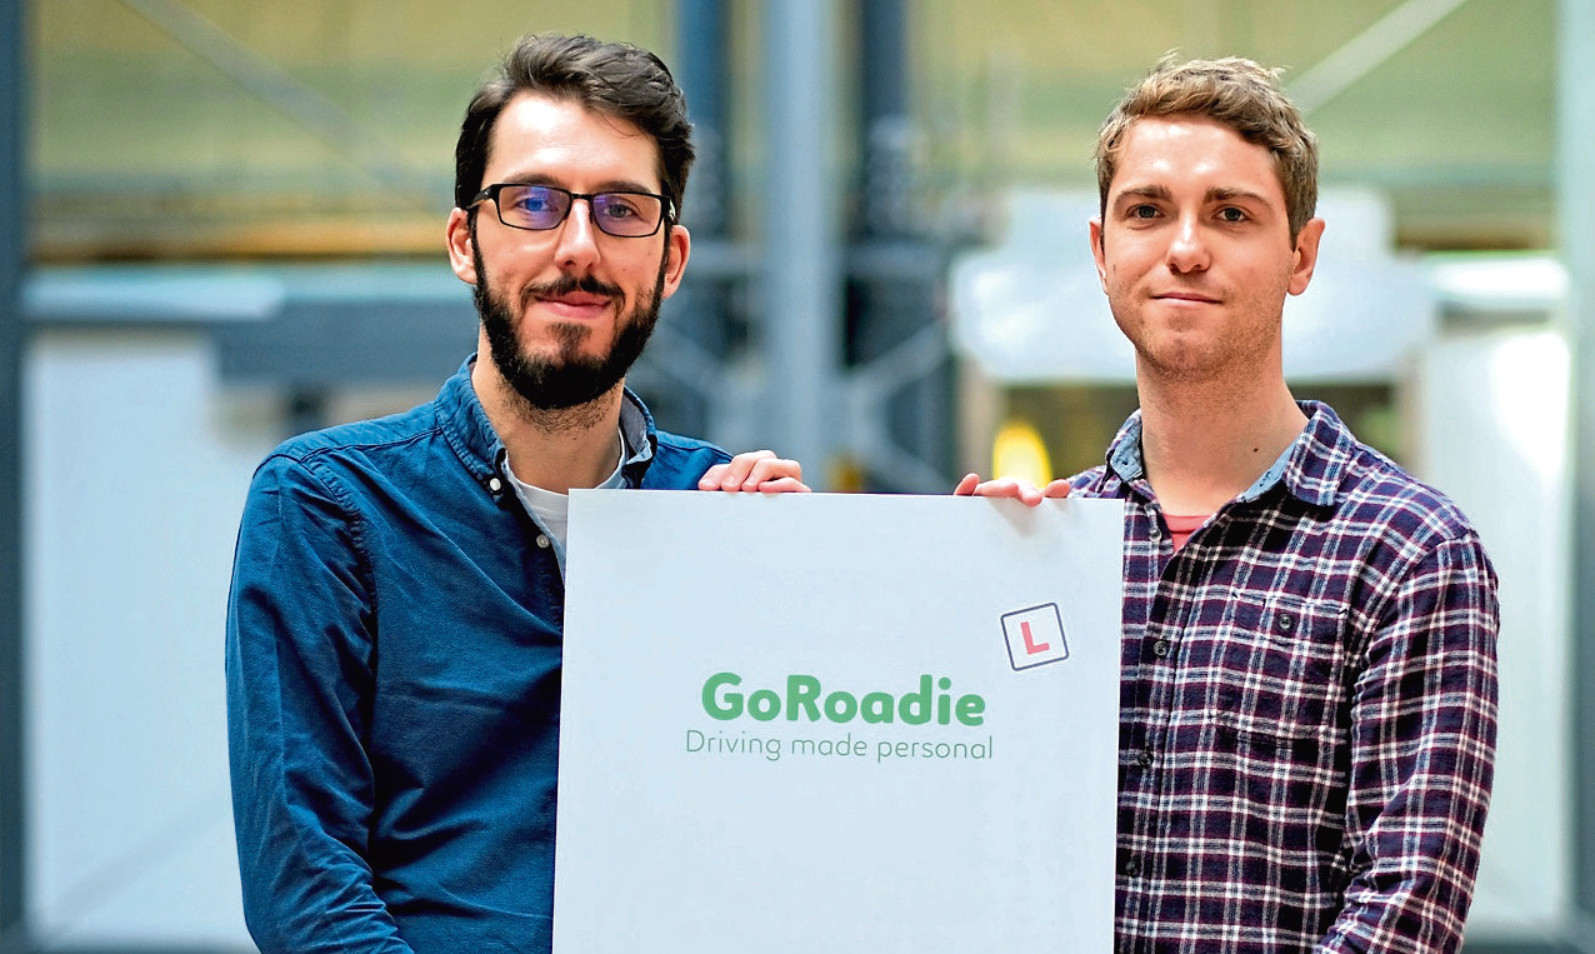 GoRoadie founders Michael Carr and Barry White